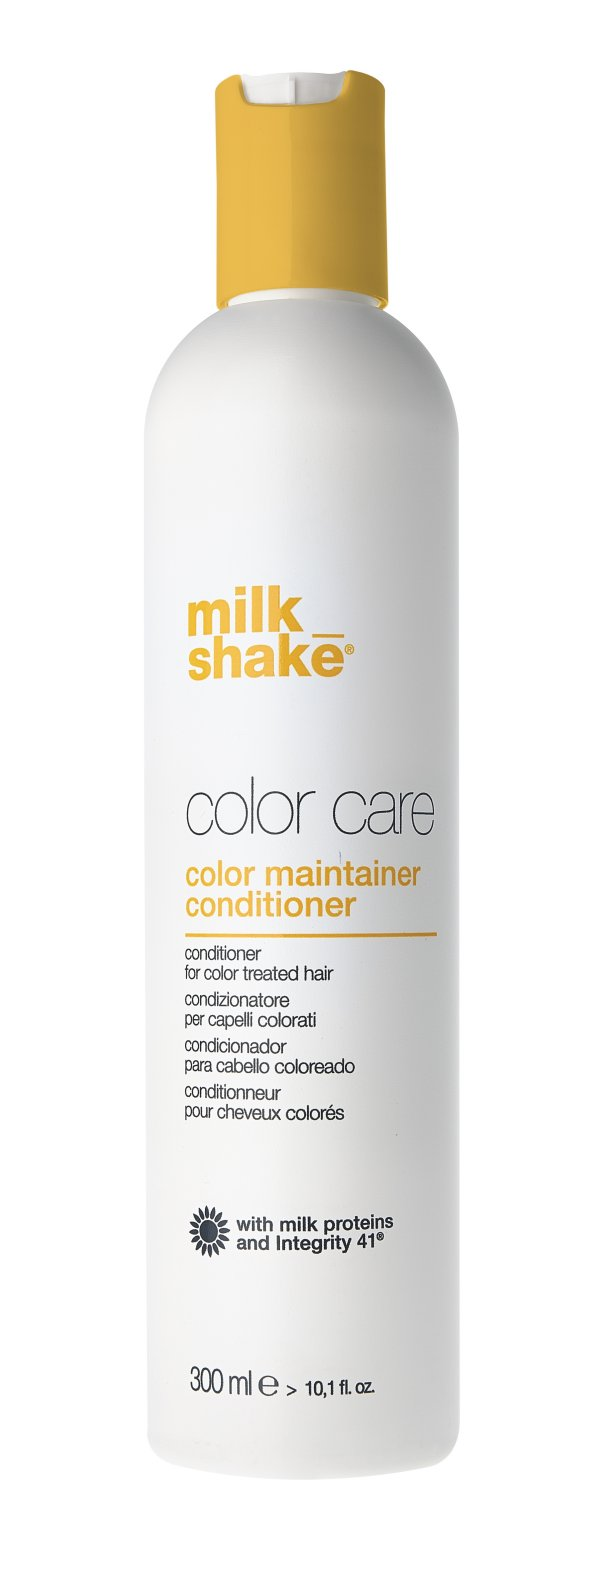 milk_shake Color Care Conditioner